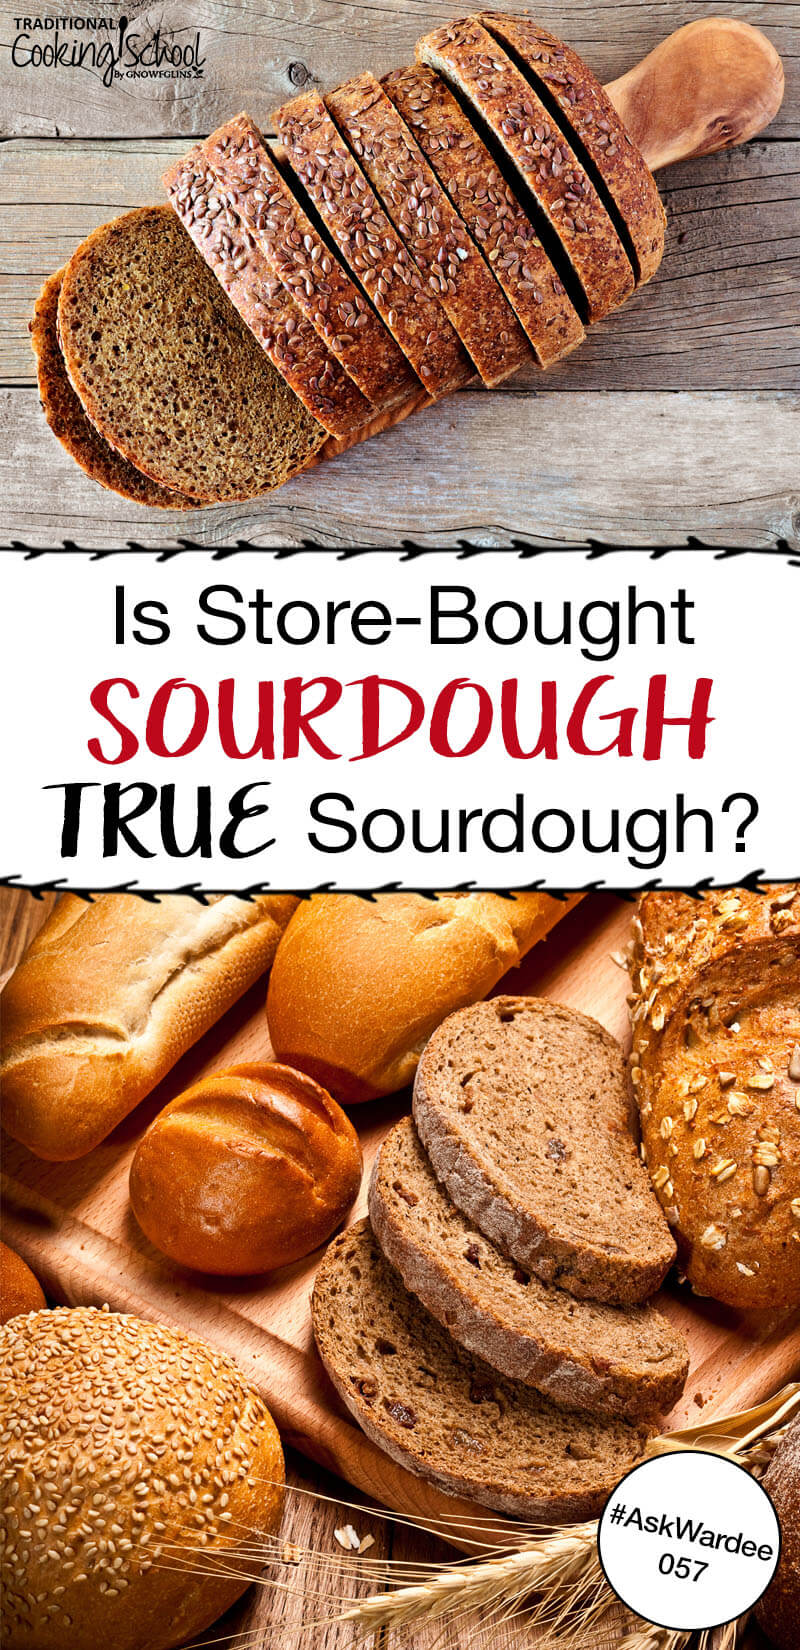 """Lori L. asks, """"Is the sourdough bread bought in the store made with a live culture or a flavoring?"""" In other words, is store-bought sourdough TRUE sourdough? Watch, listen, or read to learn the truth! 